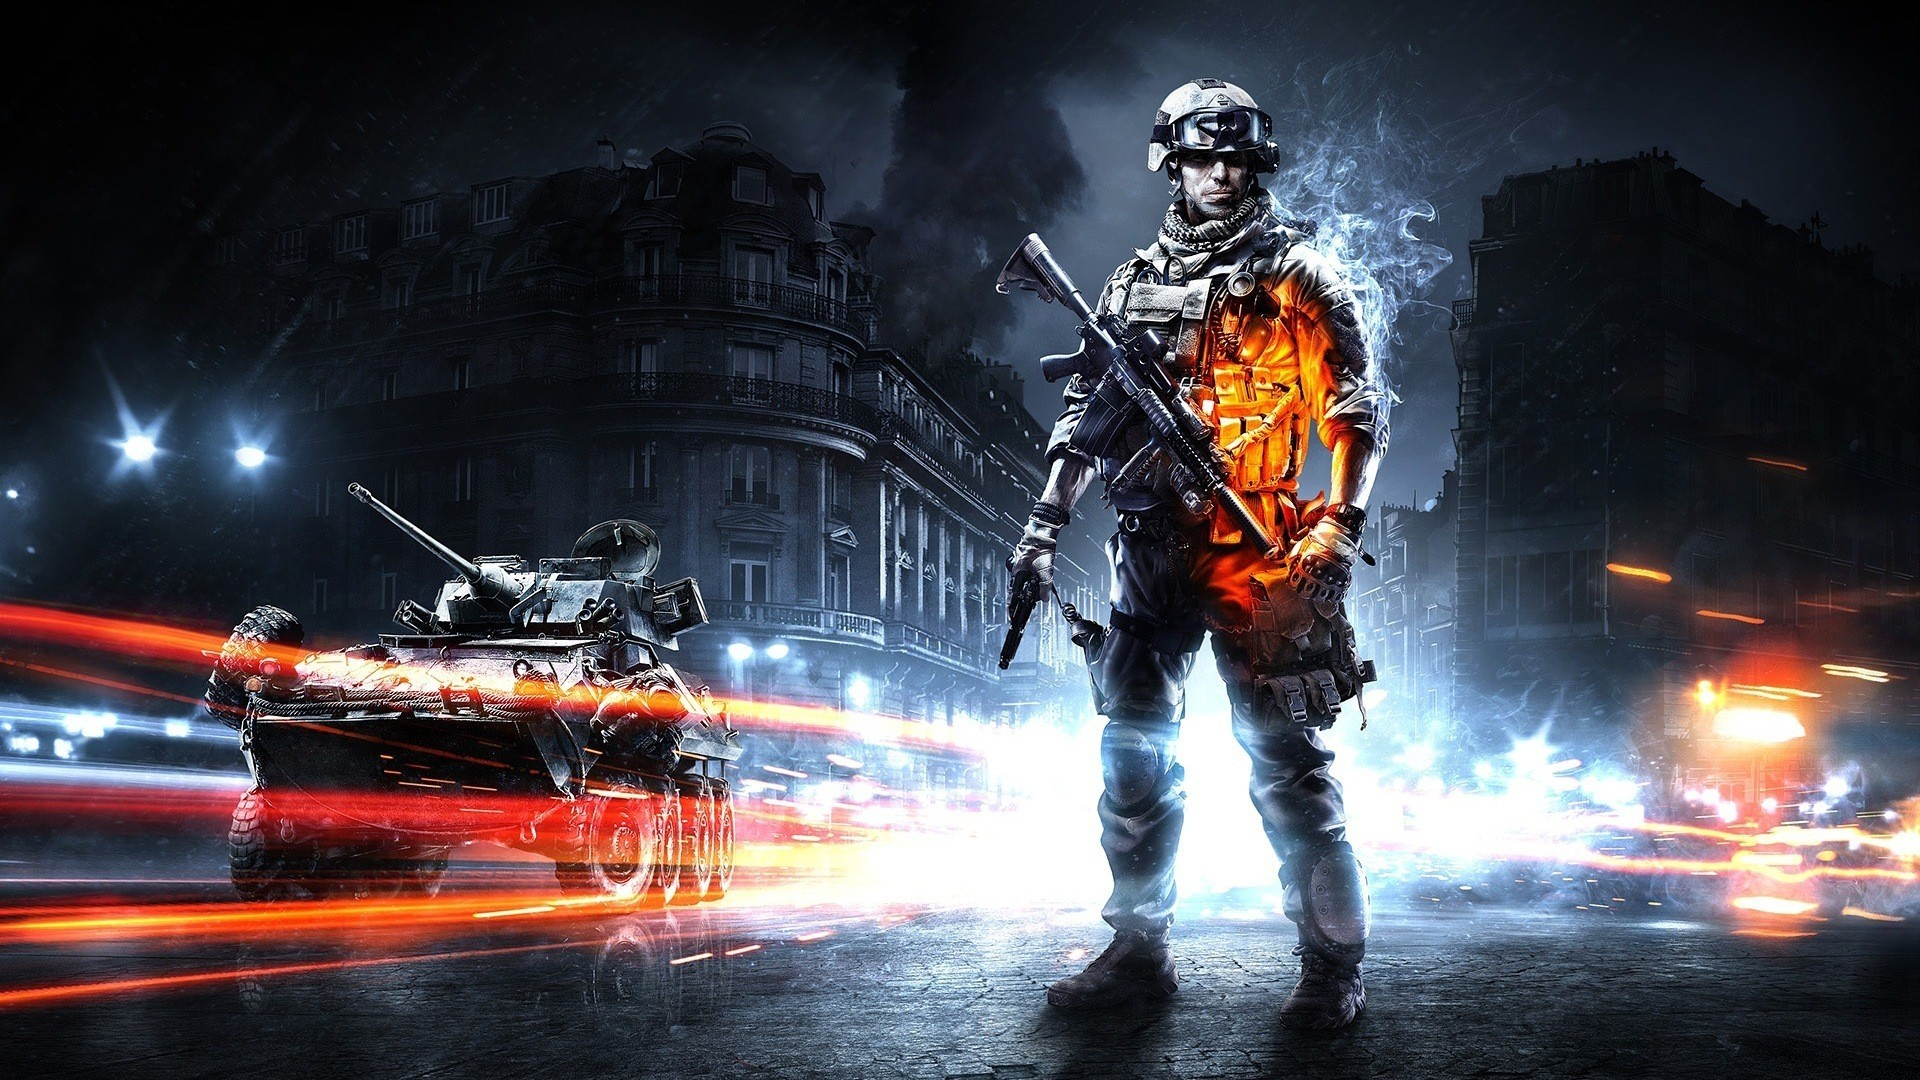 Battlefield 4 Games Wallpaper Hd: Battlefield Background ·① Download Free Stunning HD